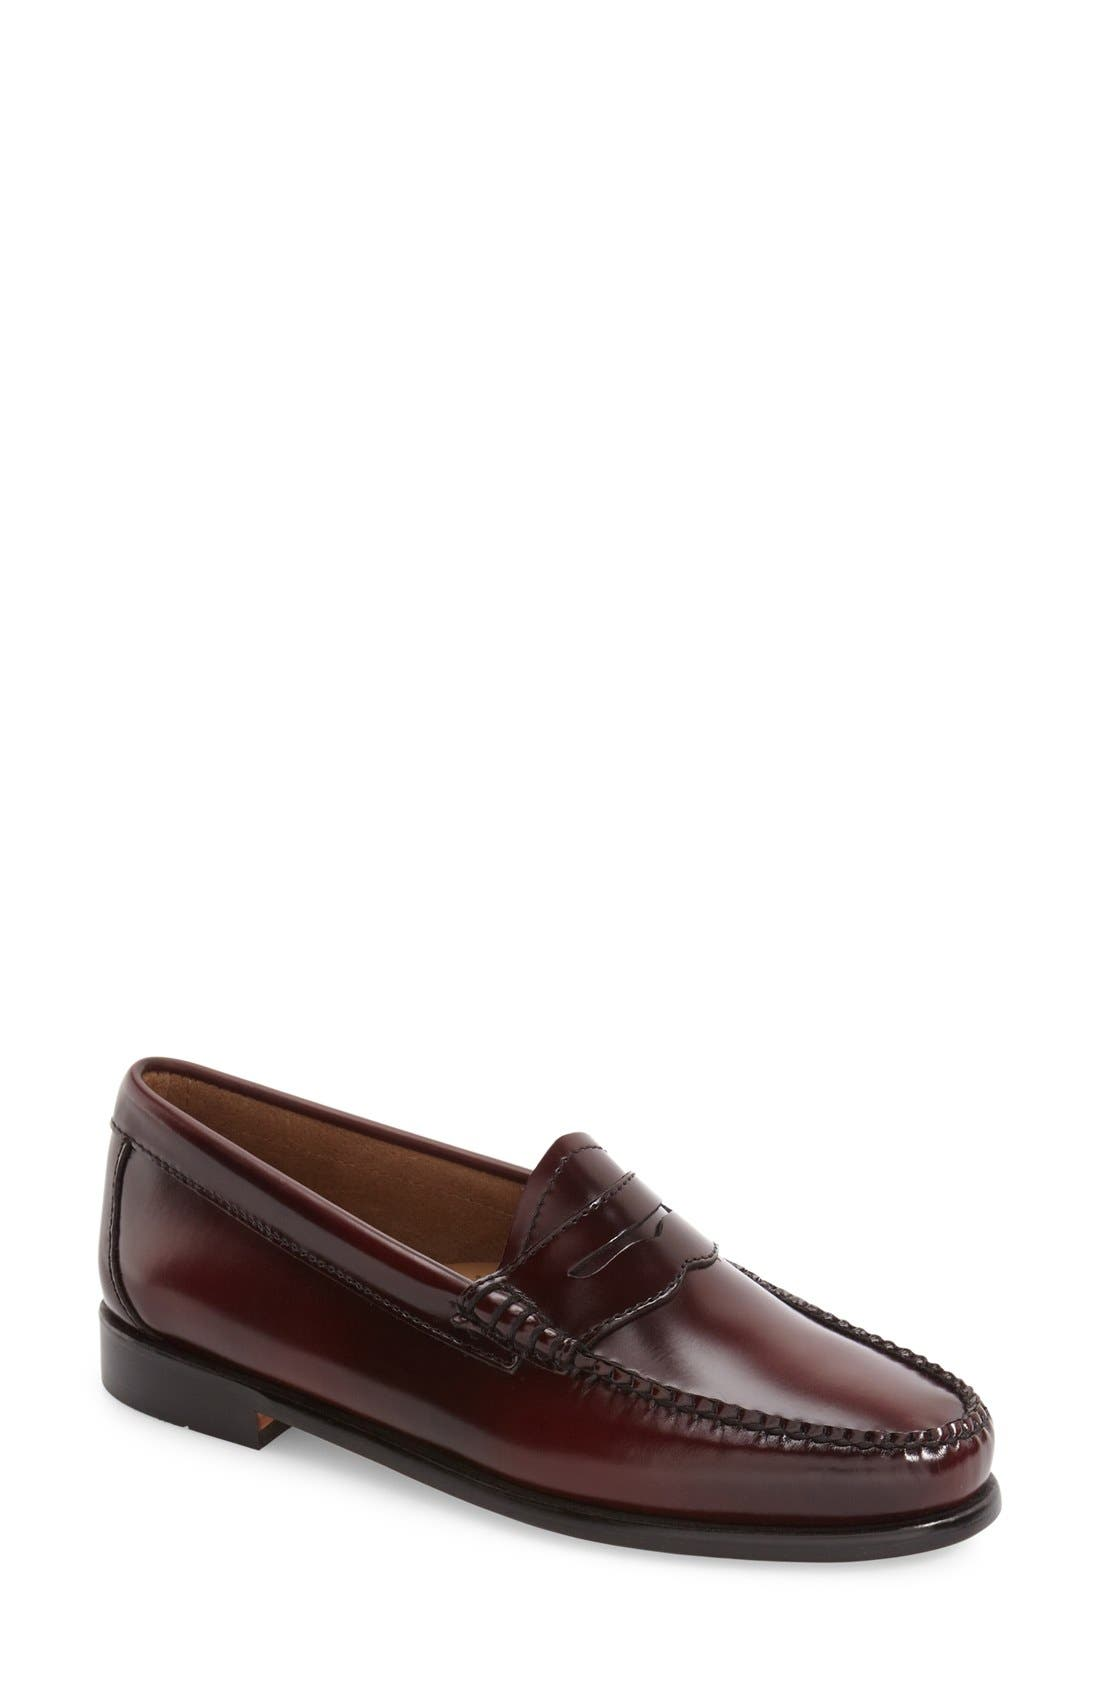 'Whitney' Loafer,                             Main thumbnail 39, color,